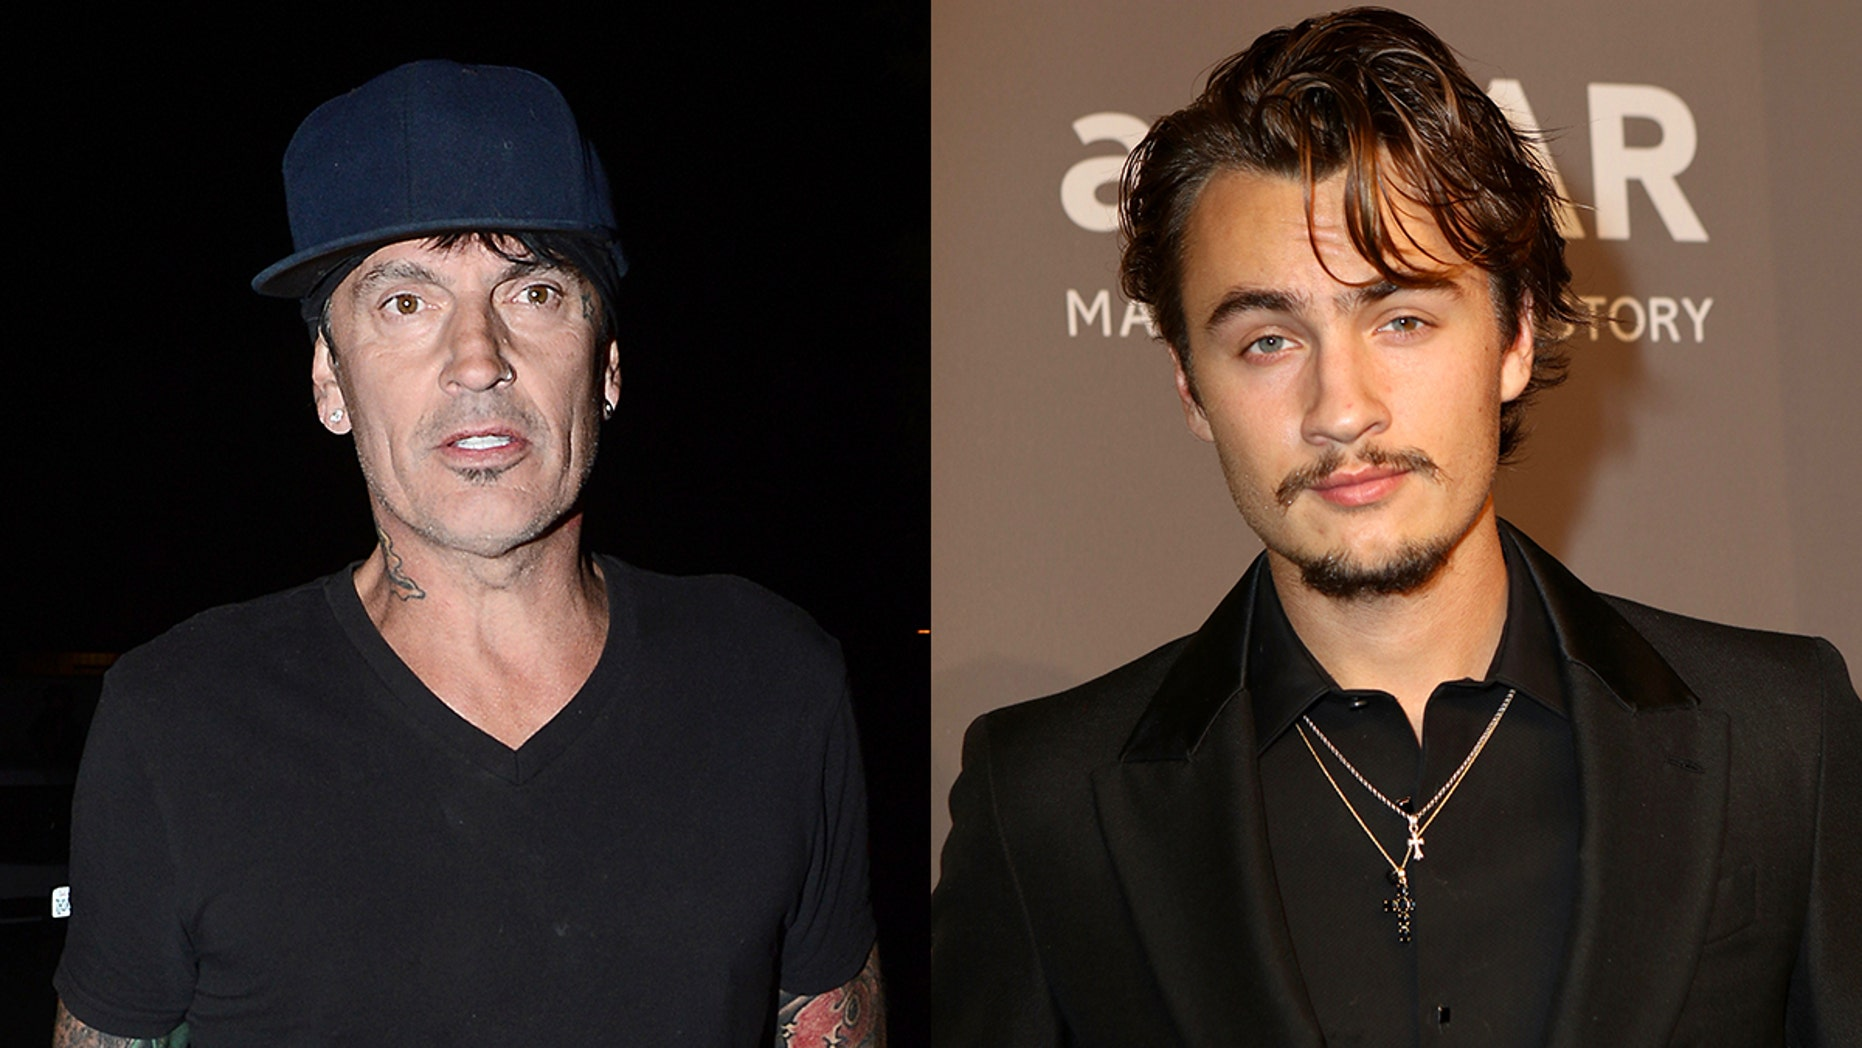 Hours after Tommy Lee claimed he paid for his son's rehab, Brandon took to social media to confirm the allegation on June 19.